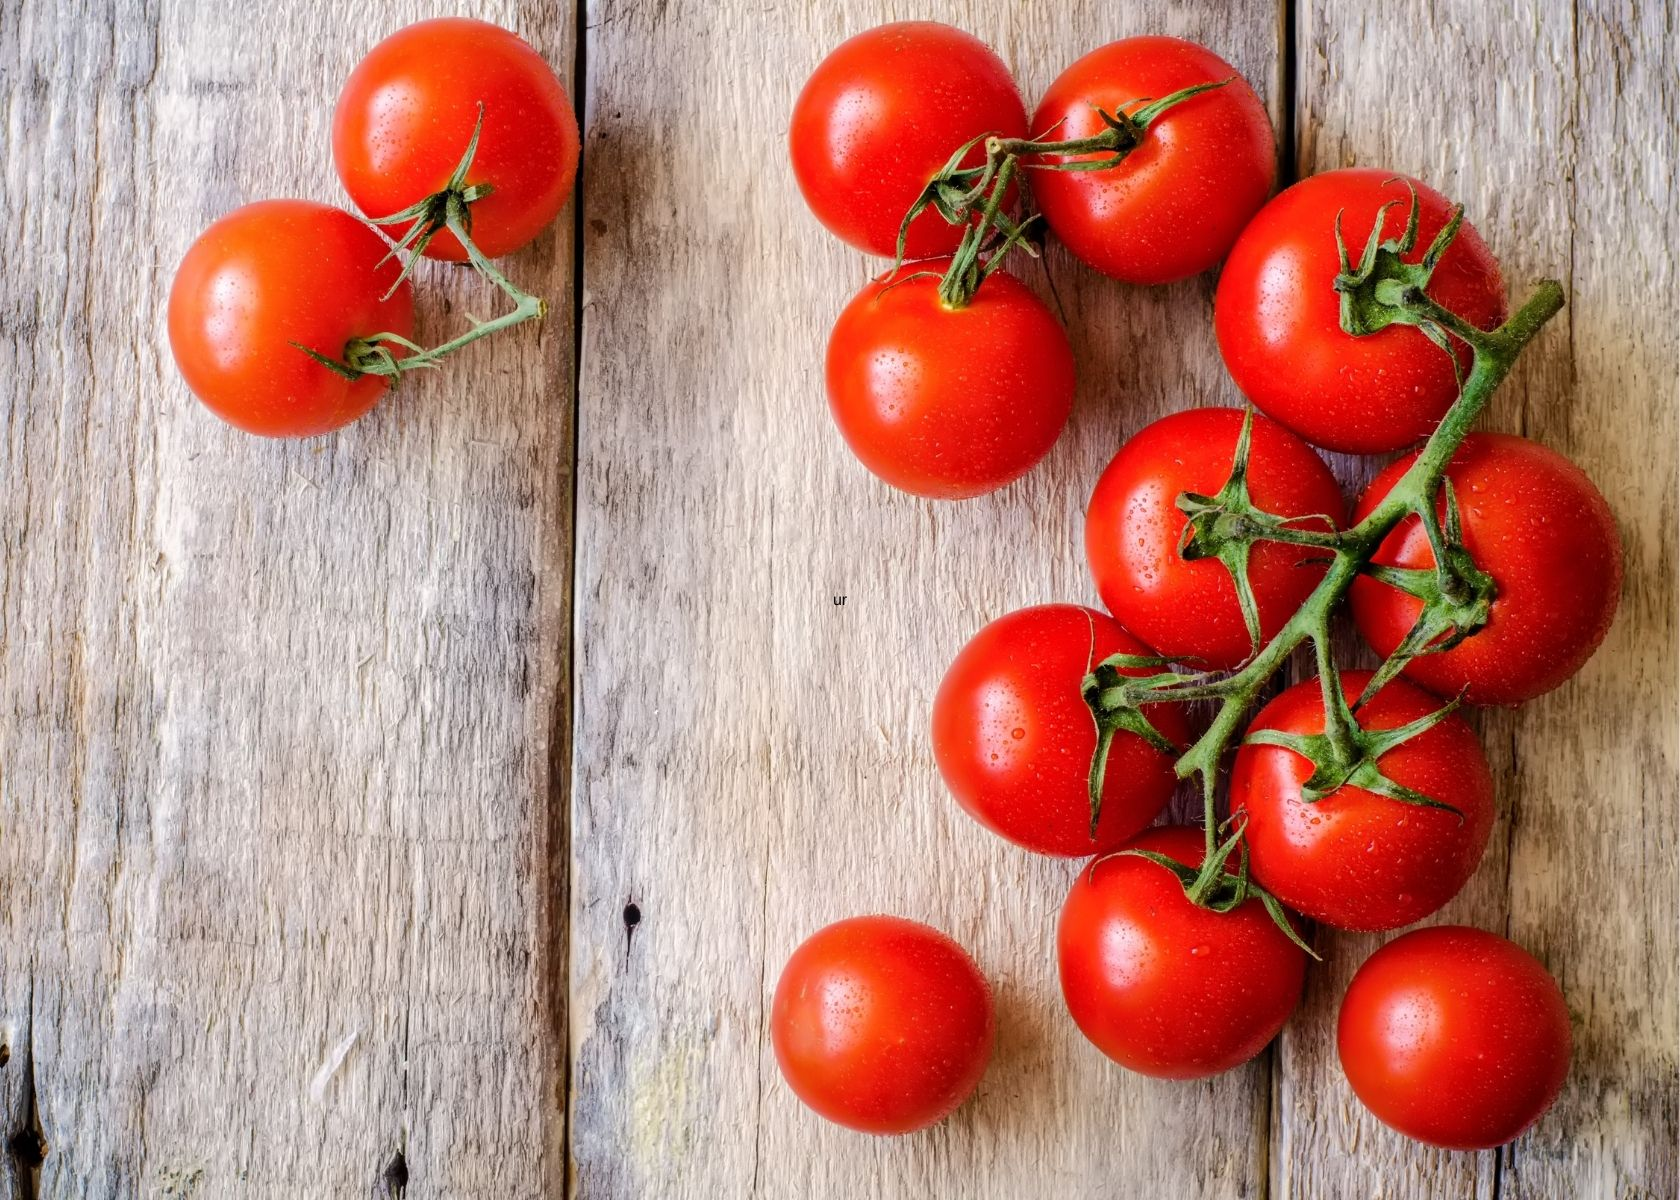 Several plump, fresh red tomatoes on the vine over rustic wooden table.